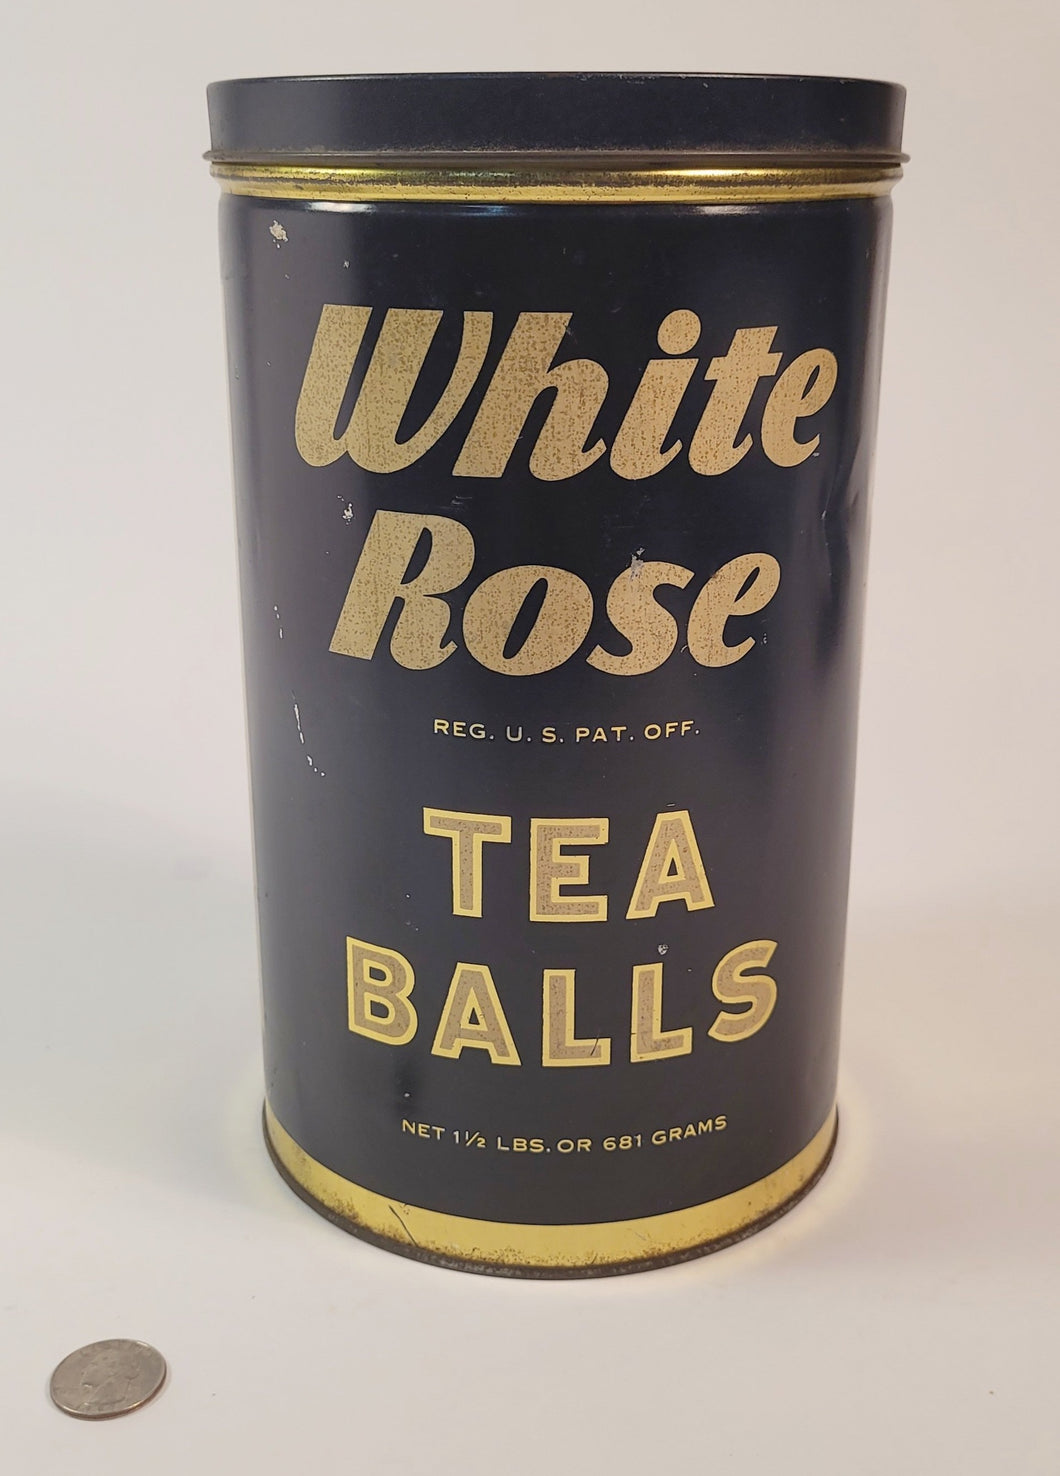 Antique 1930's WHITE ROSE TEA BALLS TIN, Vintage Kitchen, Packaging